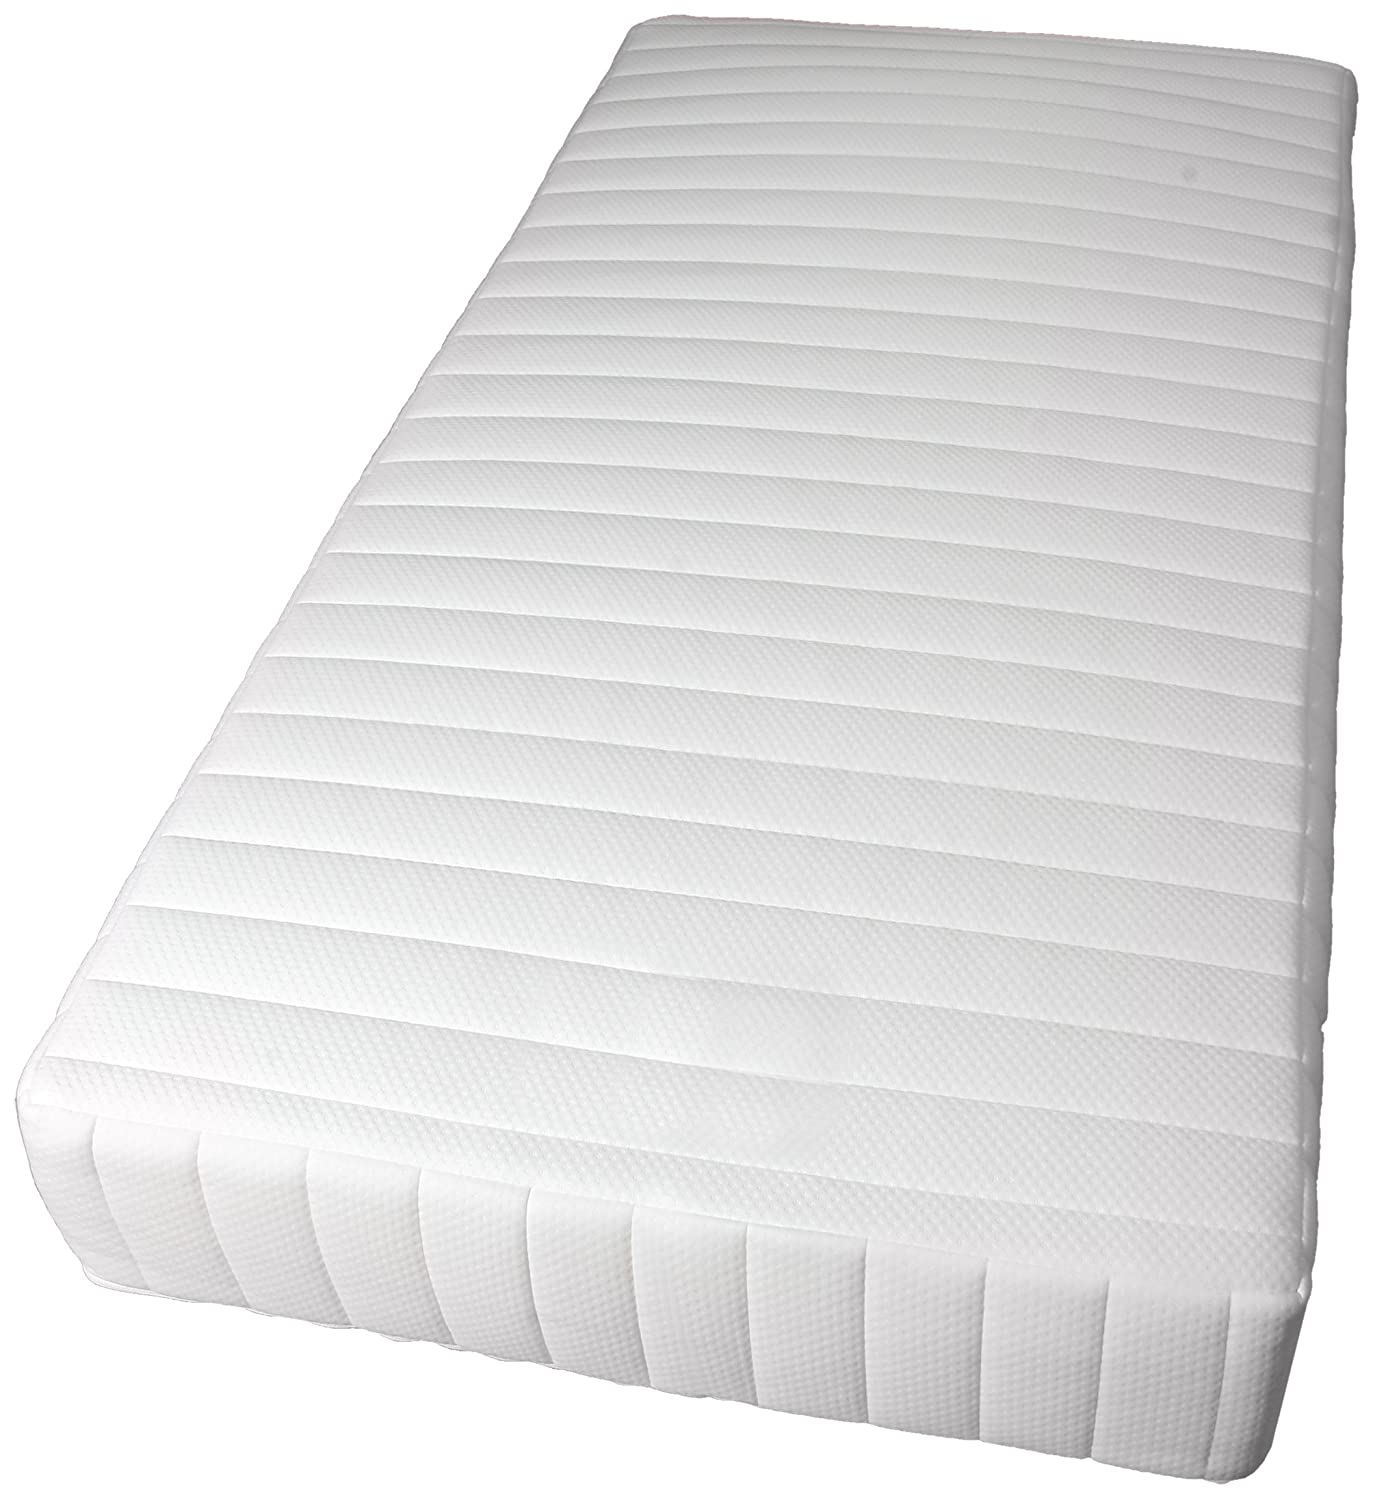 Breasley Postureform Pocket 1000 Mattress Review